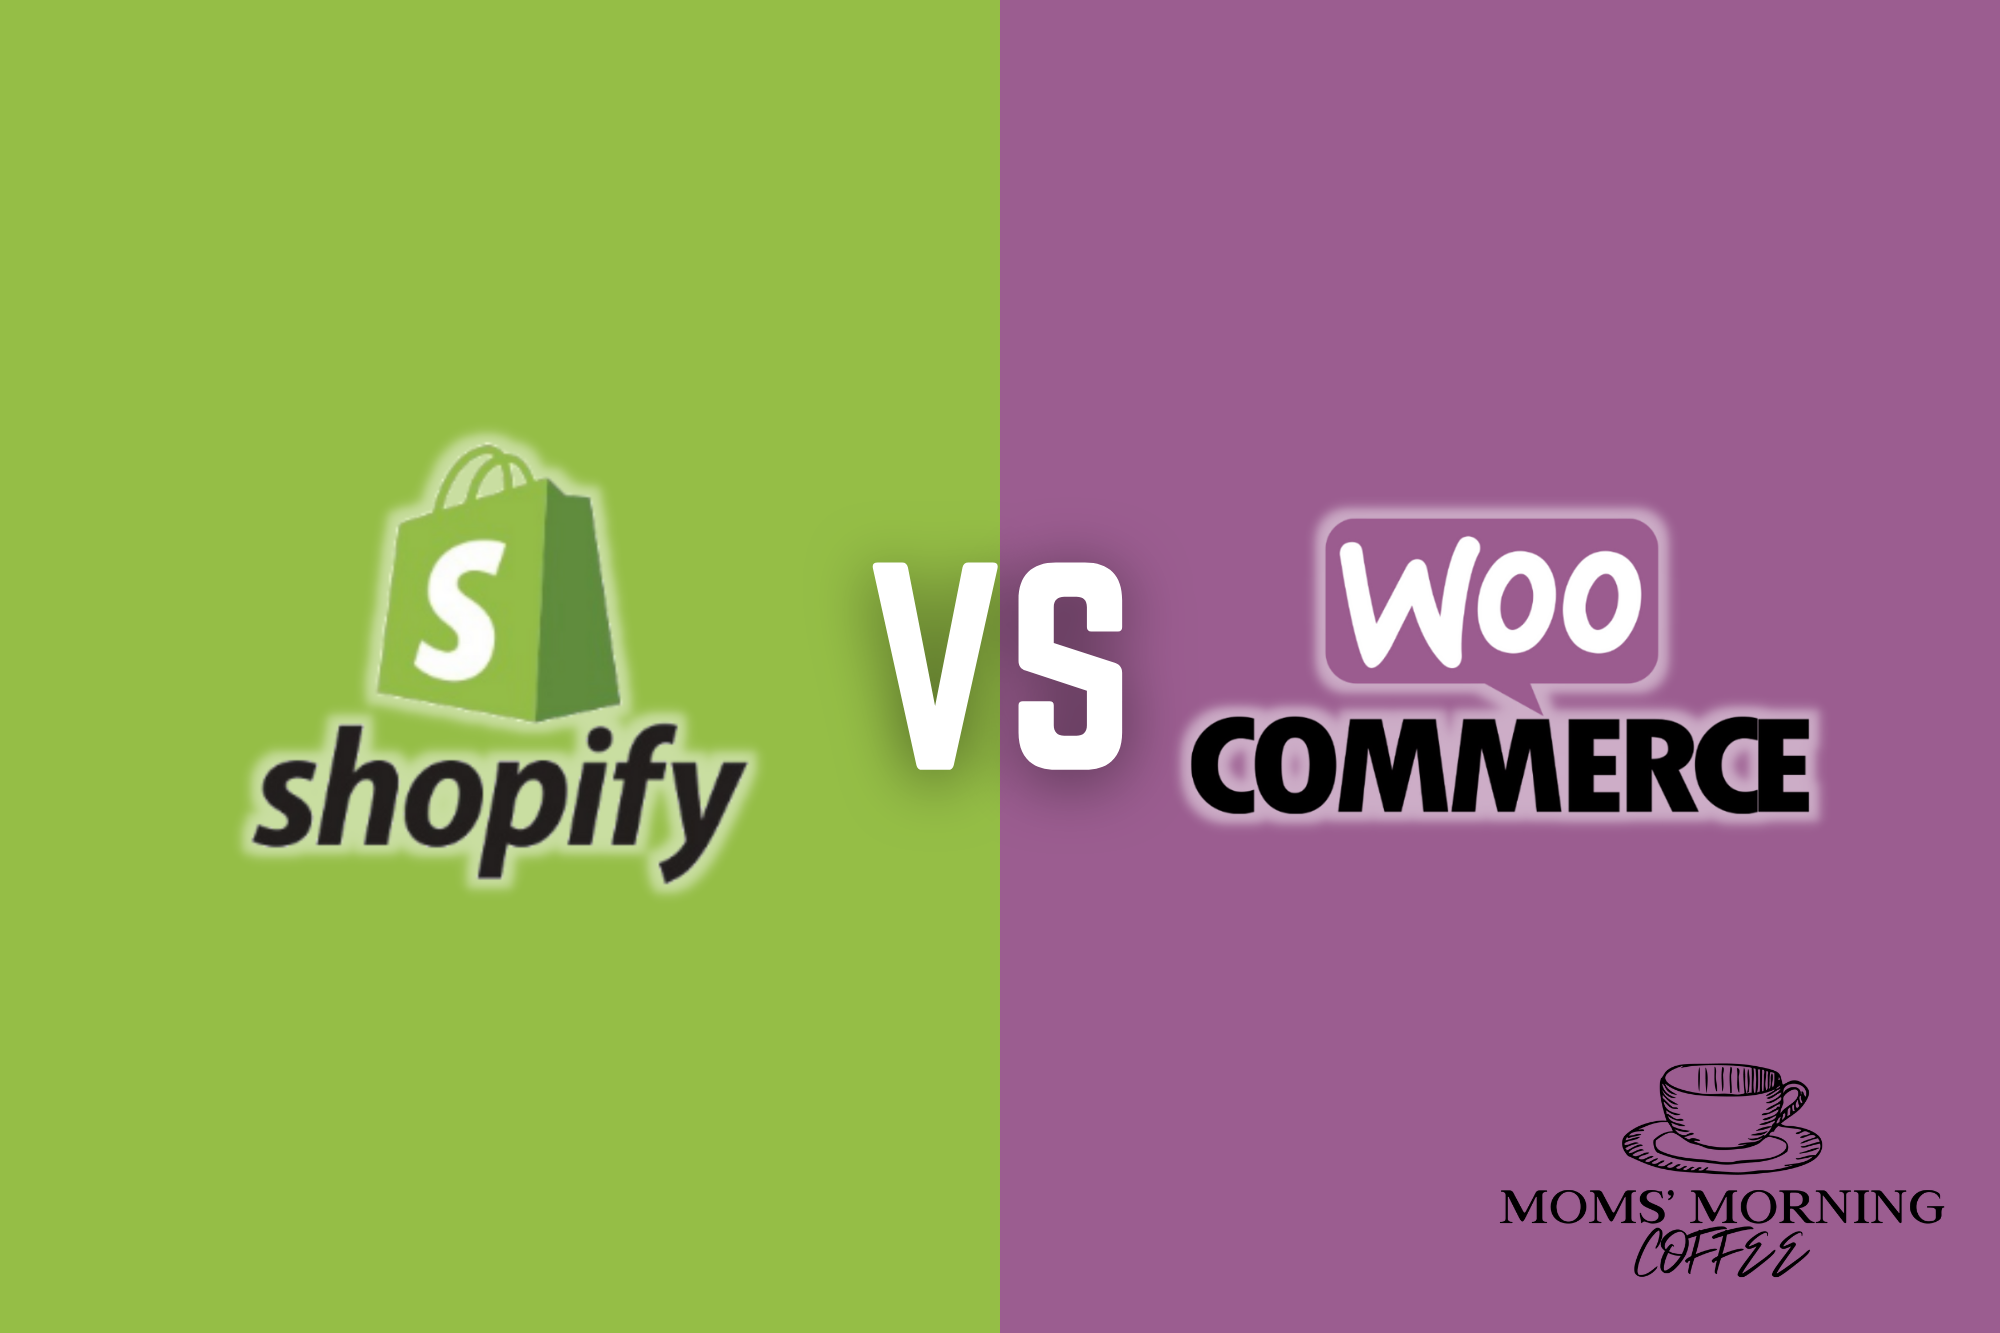 Shopify vs WooCommerce illustration